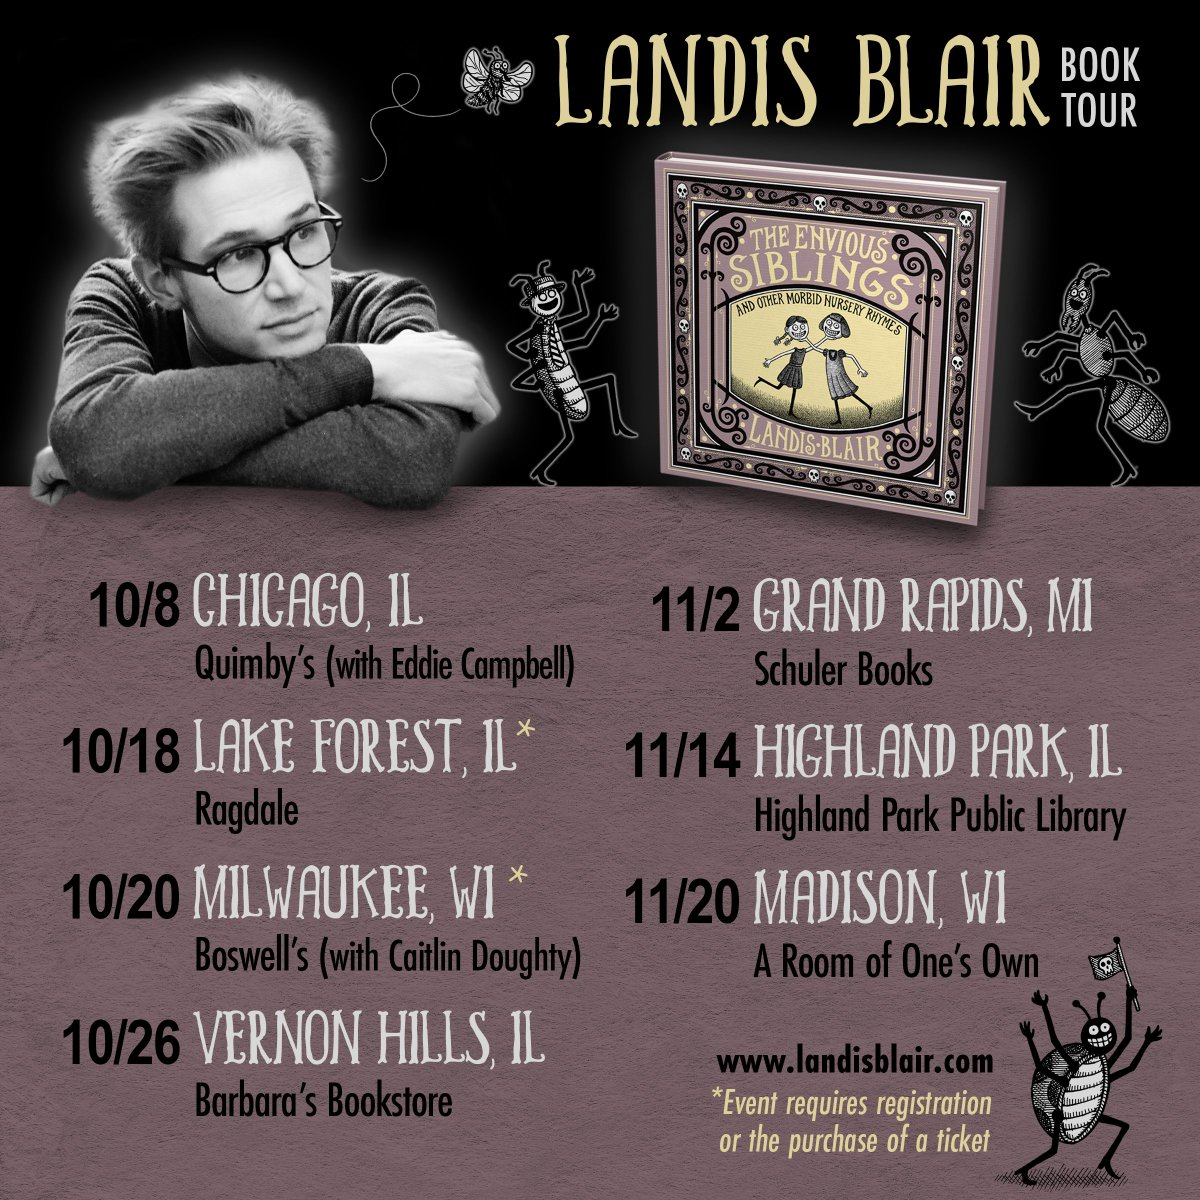 Im going to be doing a number of events this fall for my new book #TheEnviousSiblings. Hope to see some of you if you happen to be in the area.